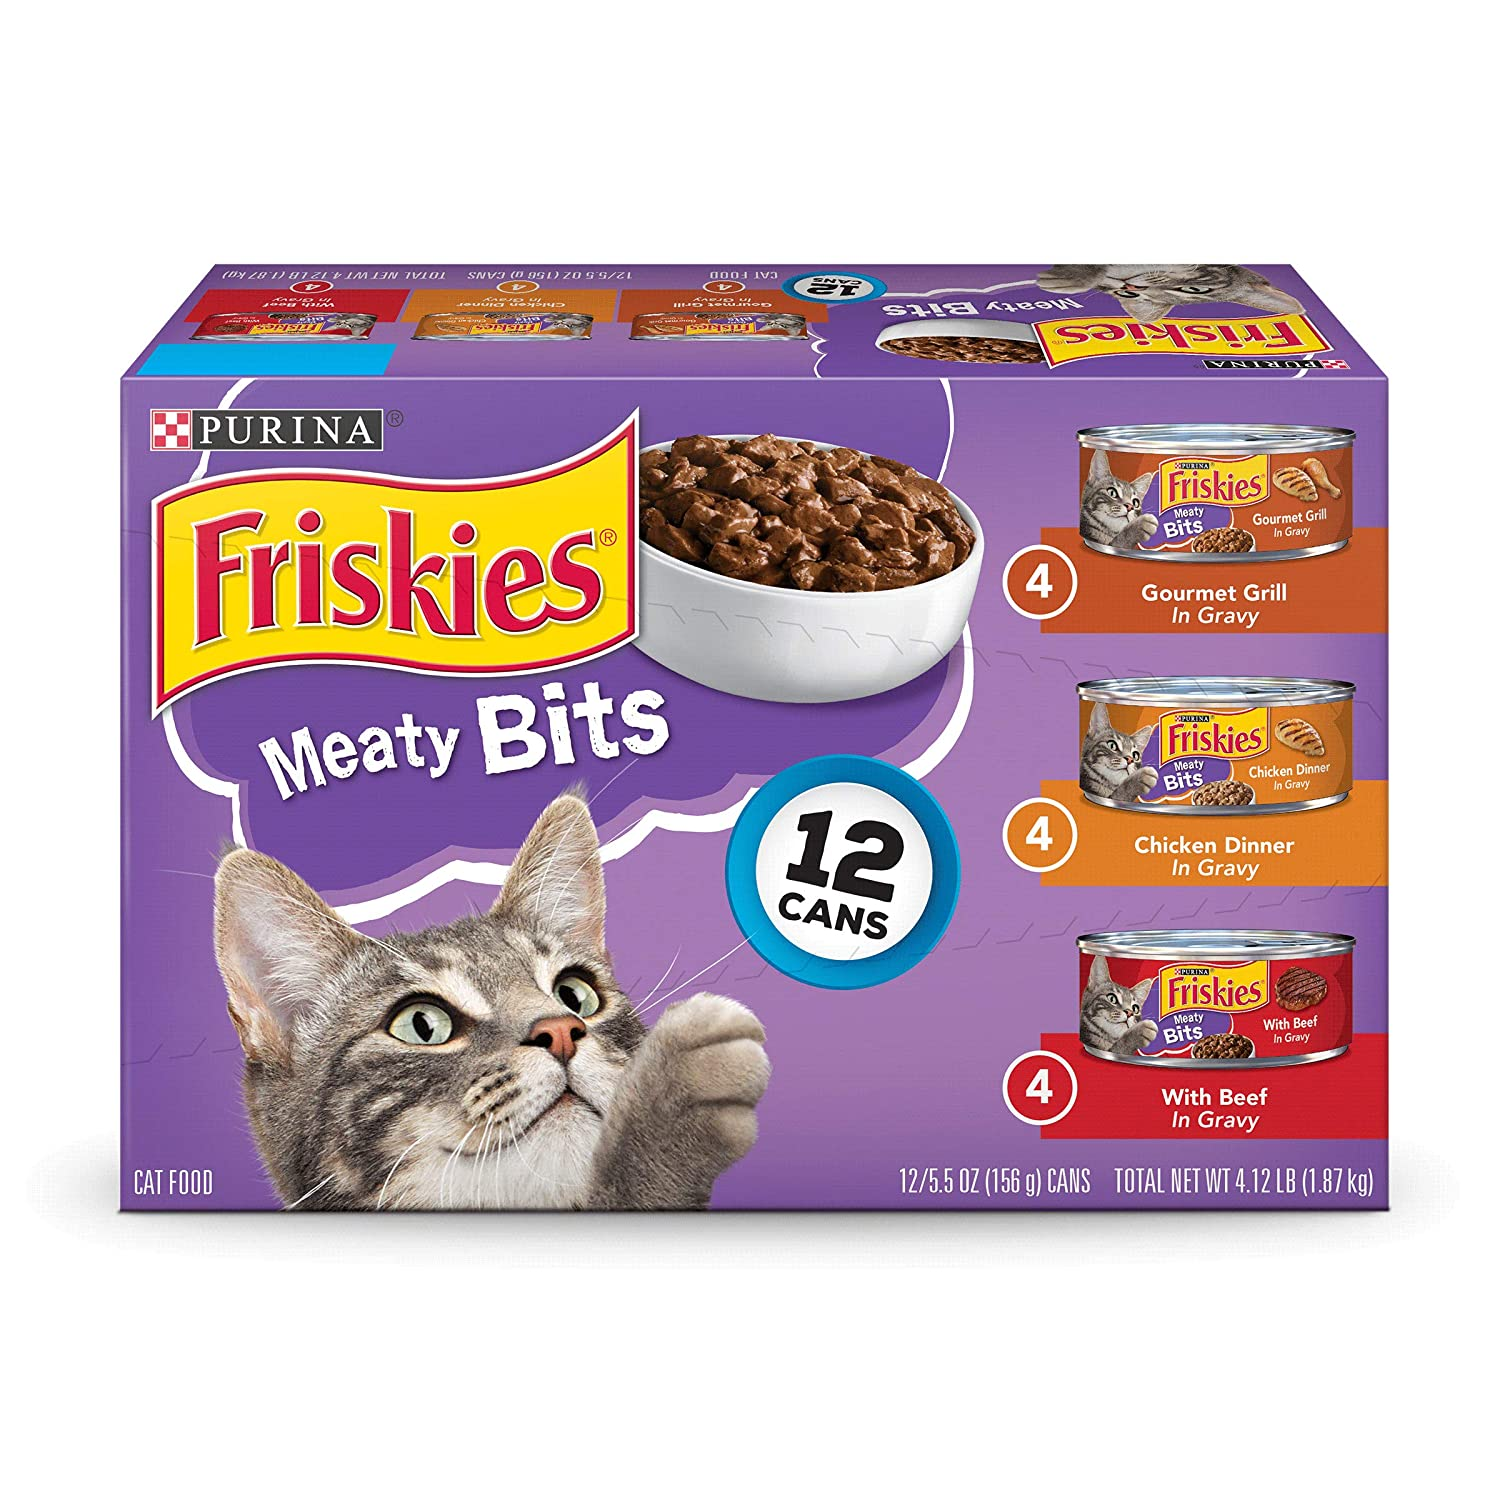 5.5 OZ, Pack of 12 (Pack of 2) Friskies Wet Cat Food, Meaty Bits, 3-Flavor Variety Pack, 5.5-Ounce Can, Pack of 12 (Pack of 2)